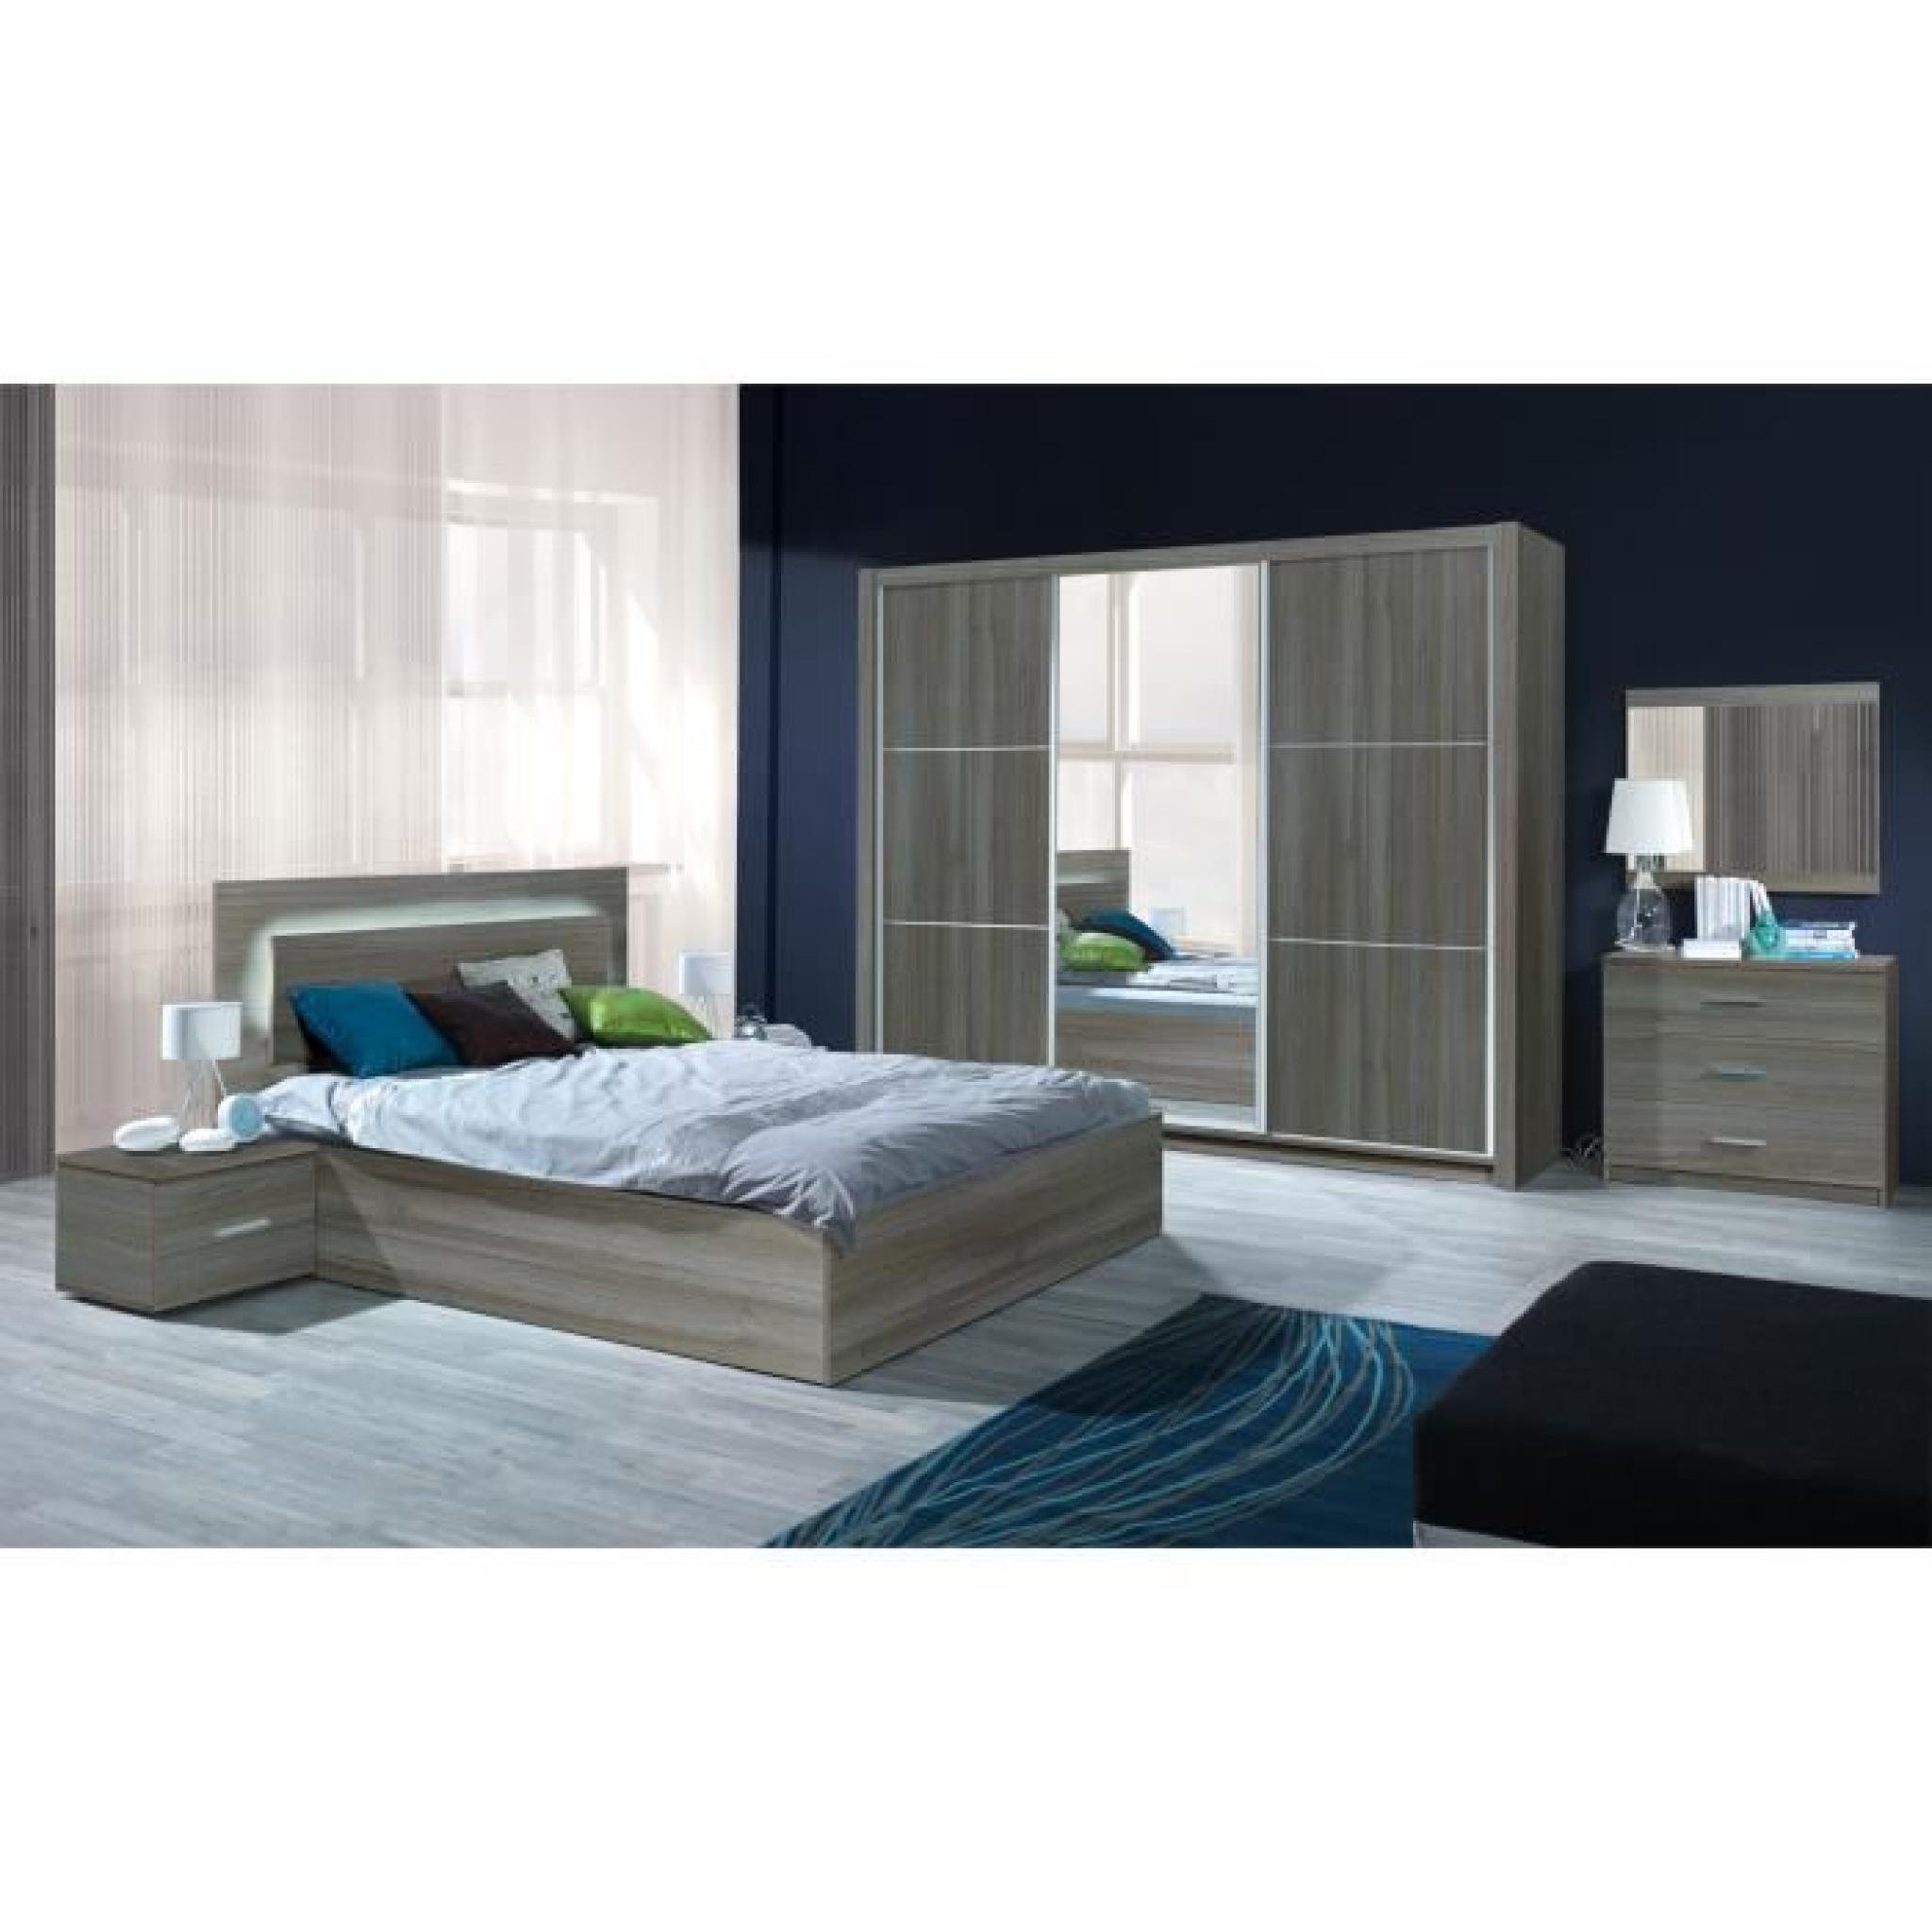 chambre coucher compl te adulte aurelio lit armoire chevets commode meuble design en. Black Bedroom Furniture Sets. Home Design Ideas